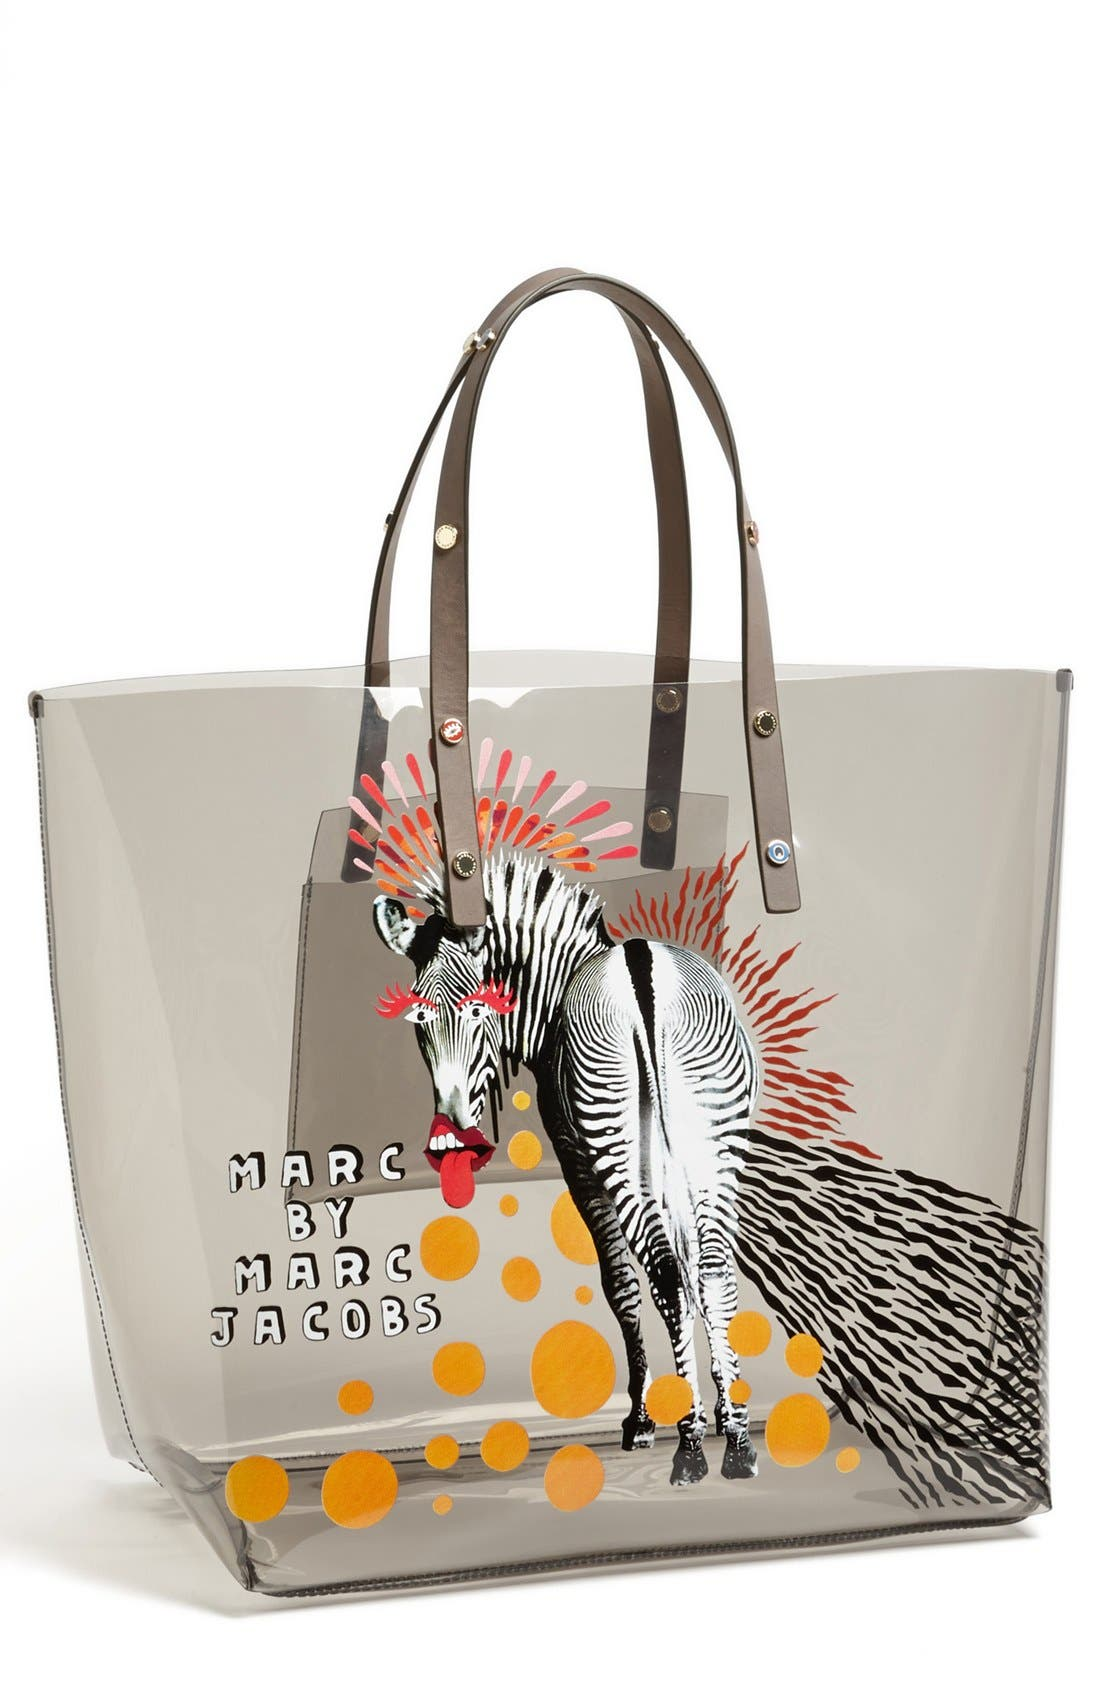 Main Image - MARC BY MARC JACOBS 'Zebra' Tote